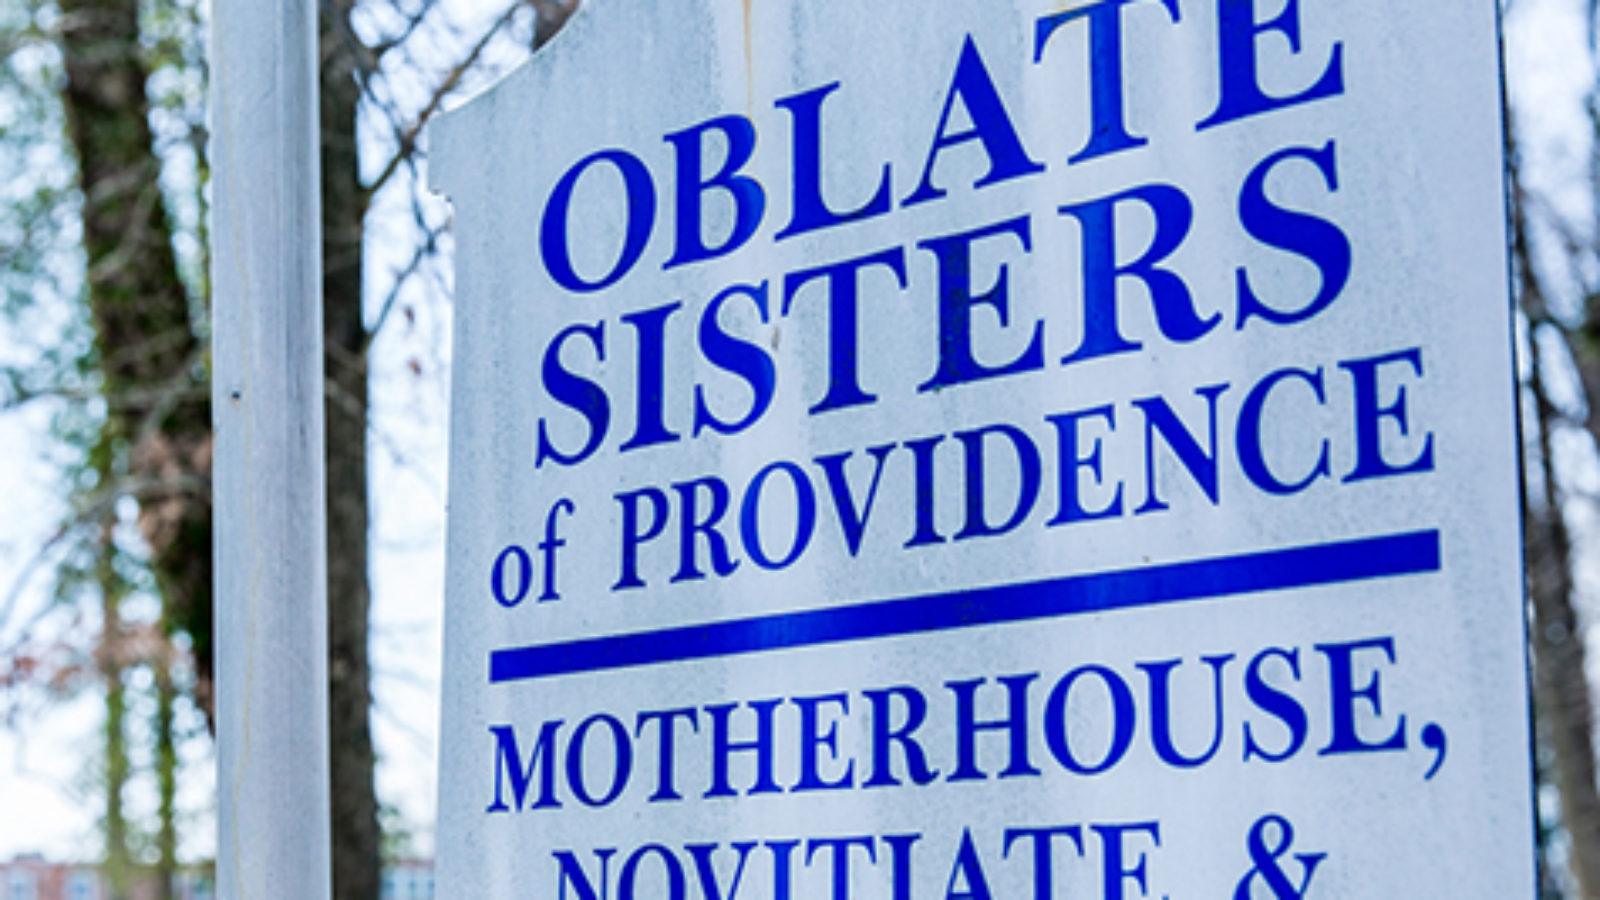 Outdoor sign for the Oblate Sisters of Providence.